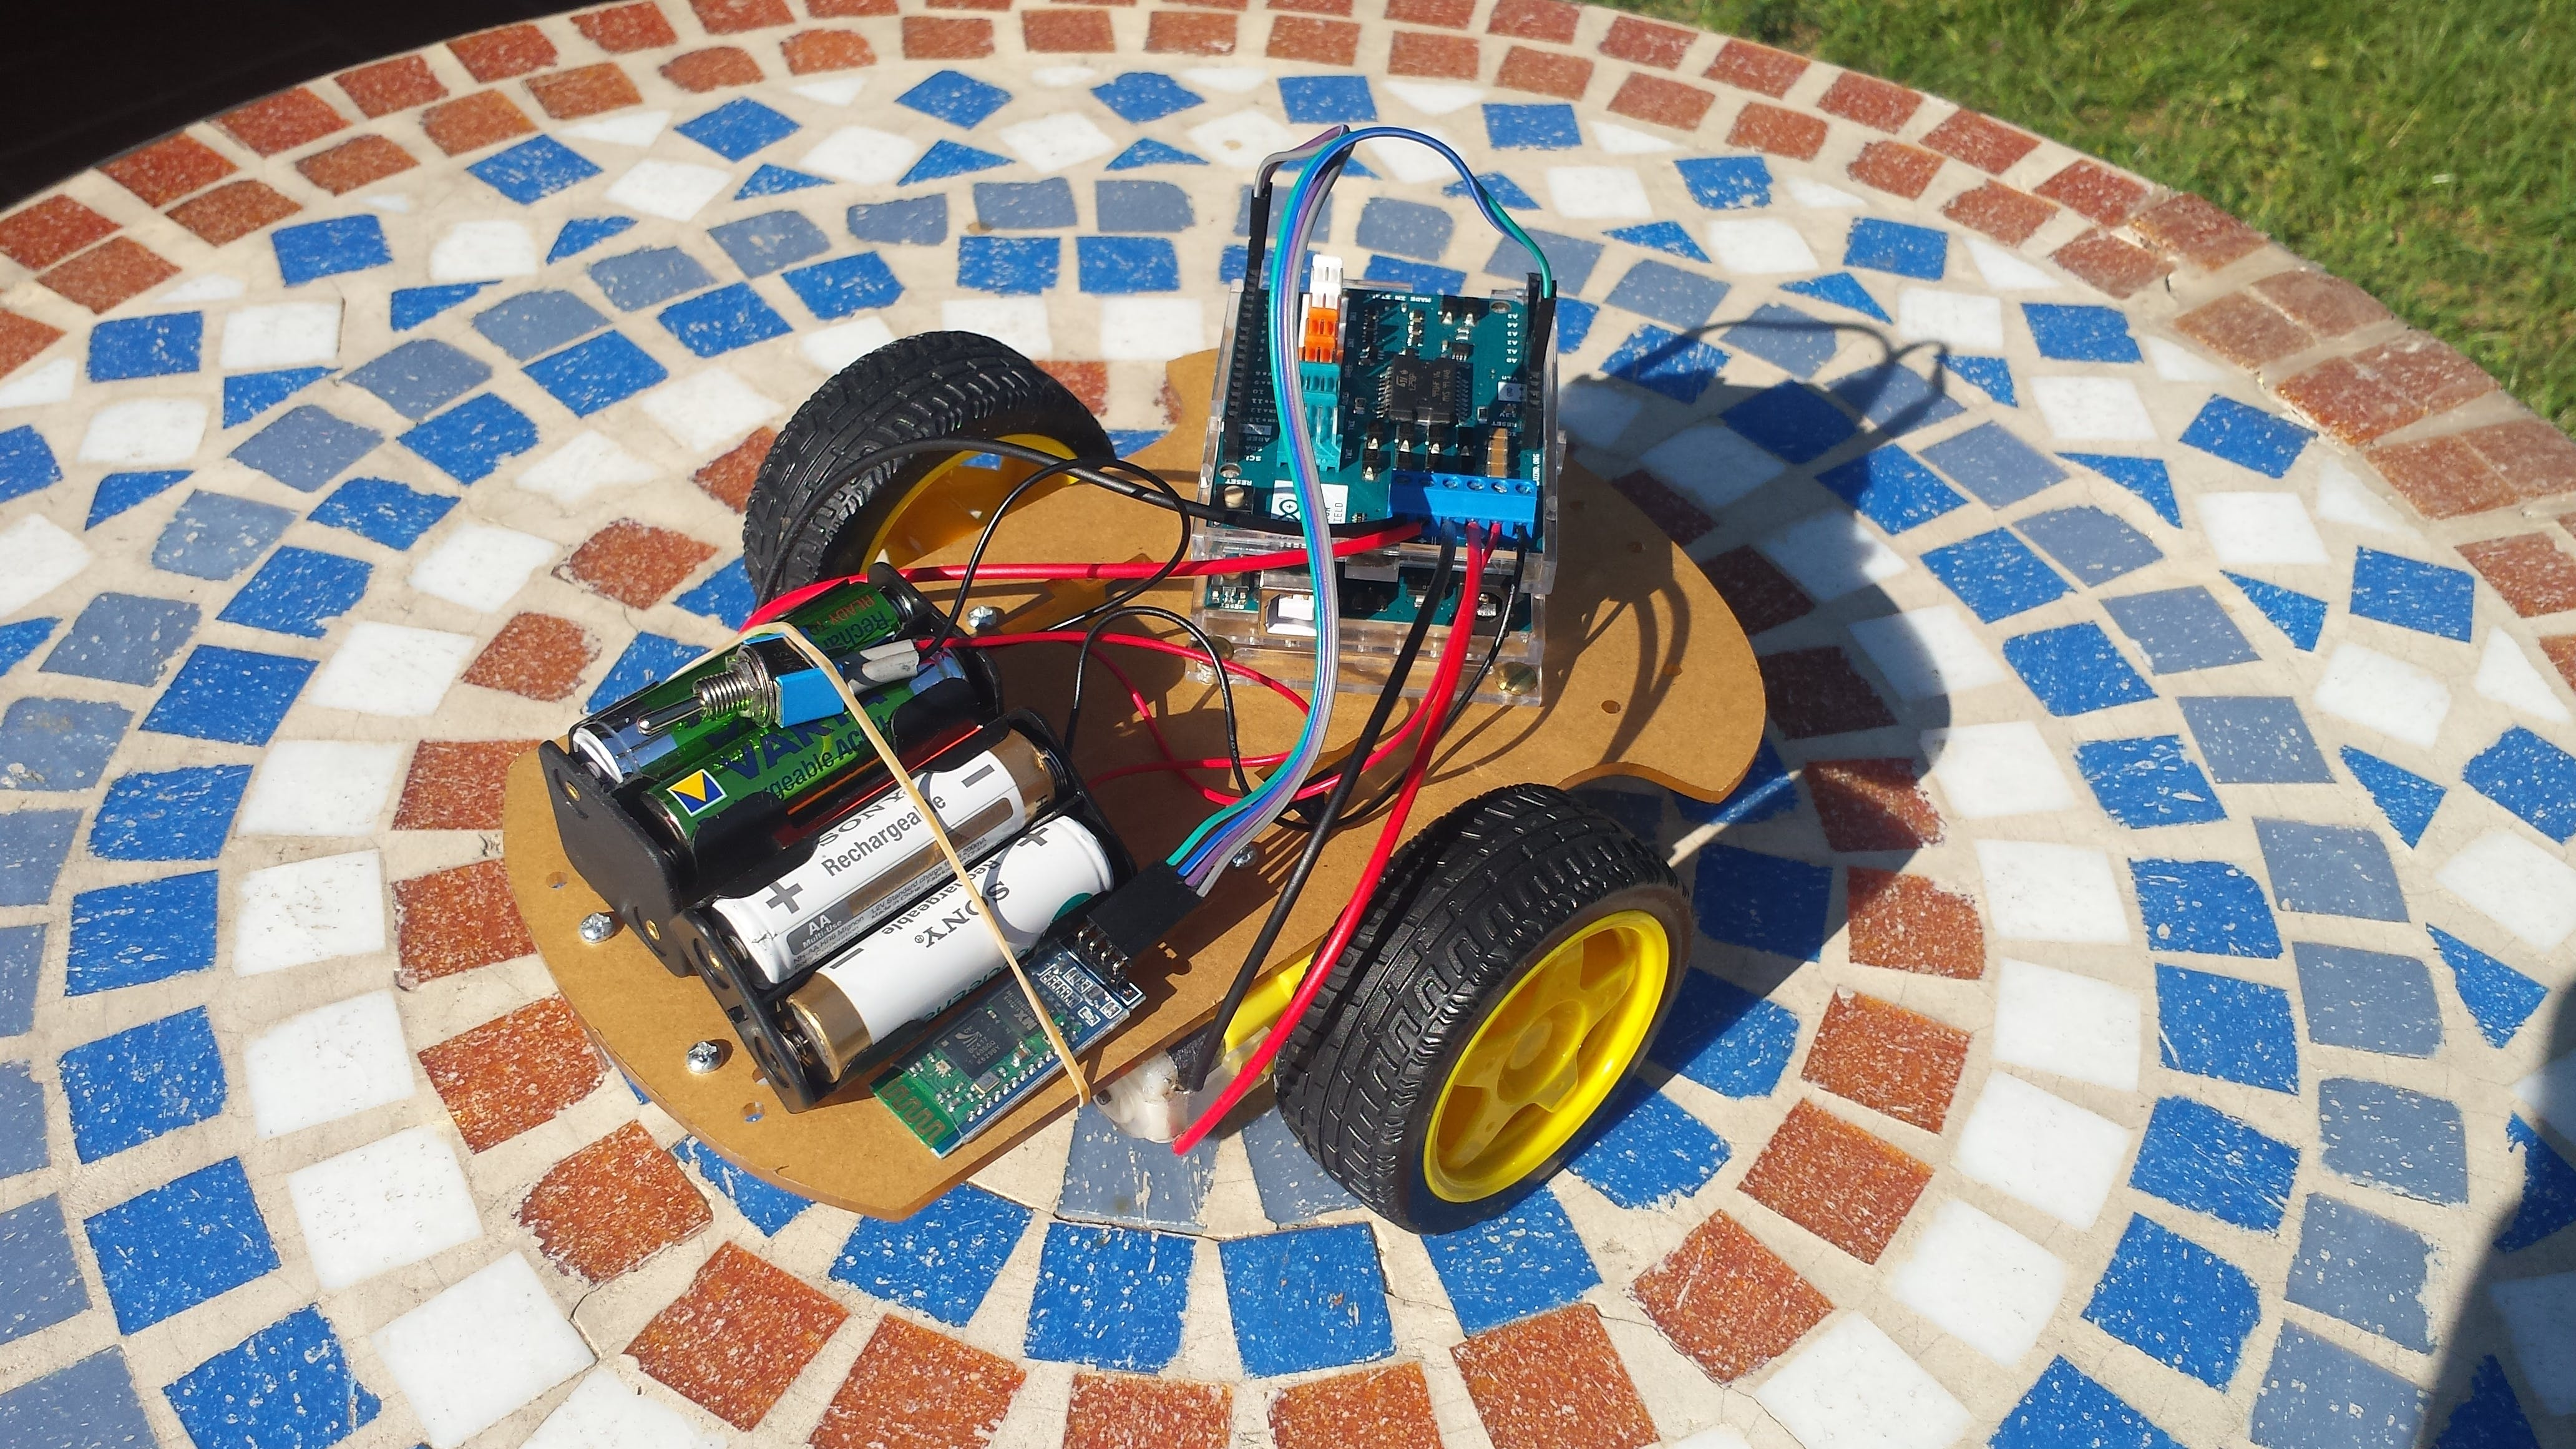 CARMAGEDDON: The Agile Arduino Car